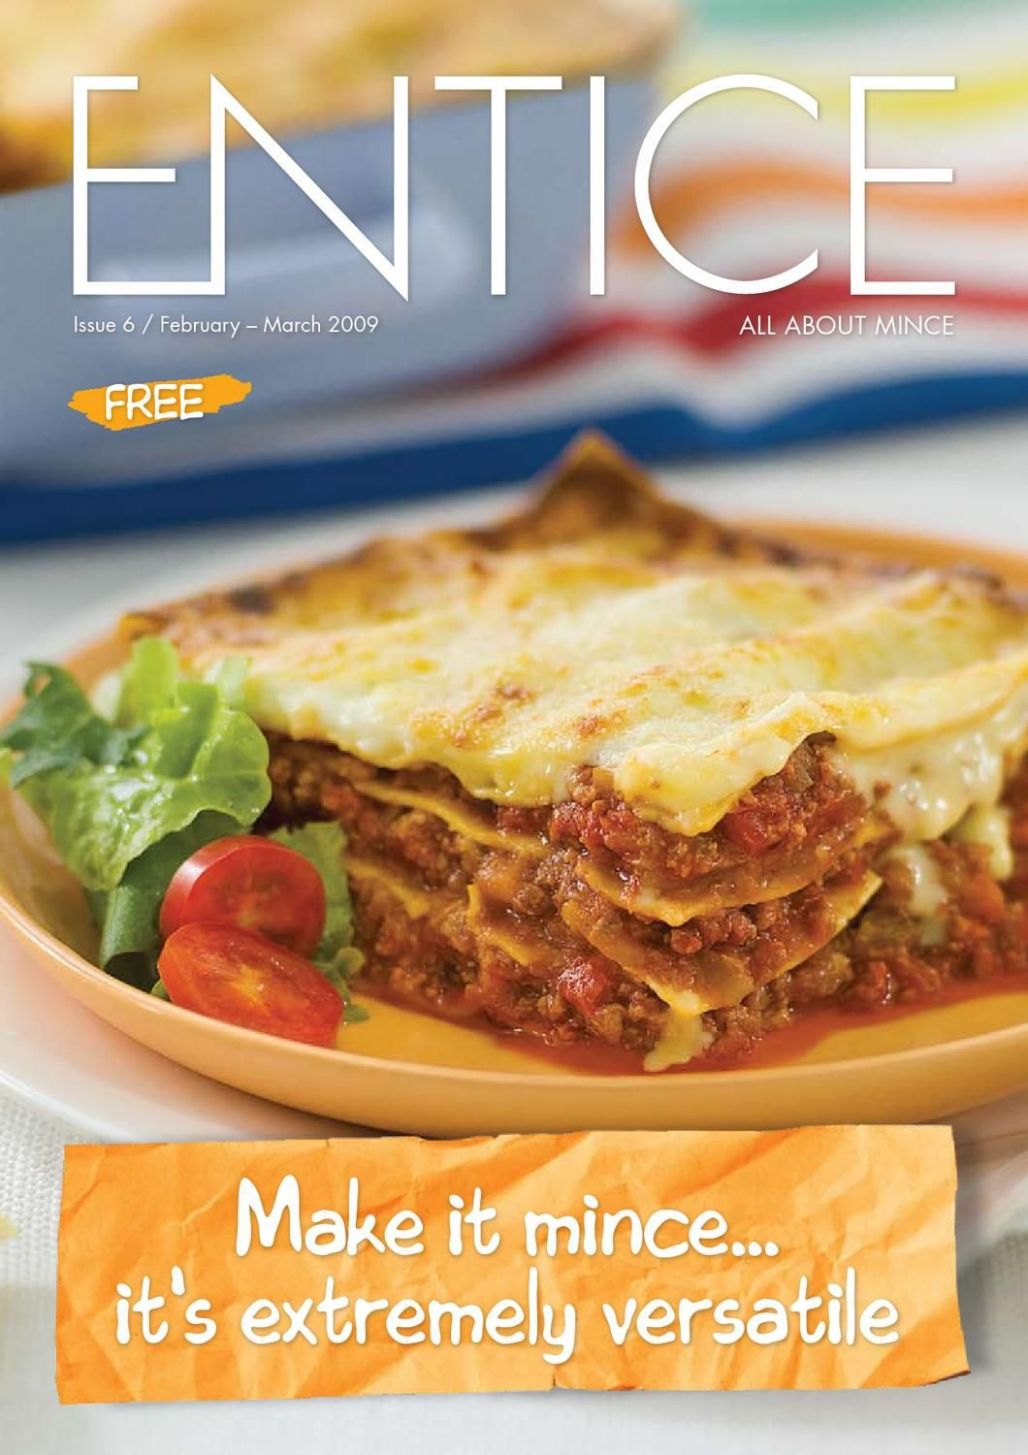 Entice Issue 12 | Beef recipes, Food recipes, Food inspiration - Beef Recipes Pdf